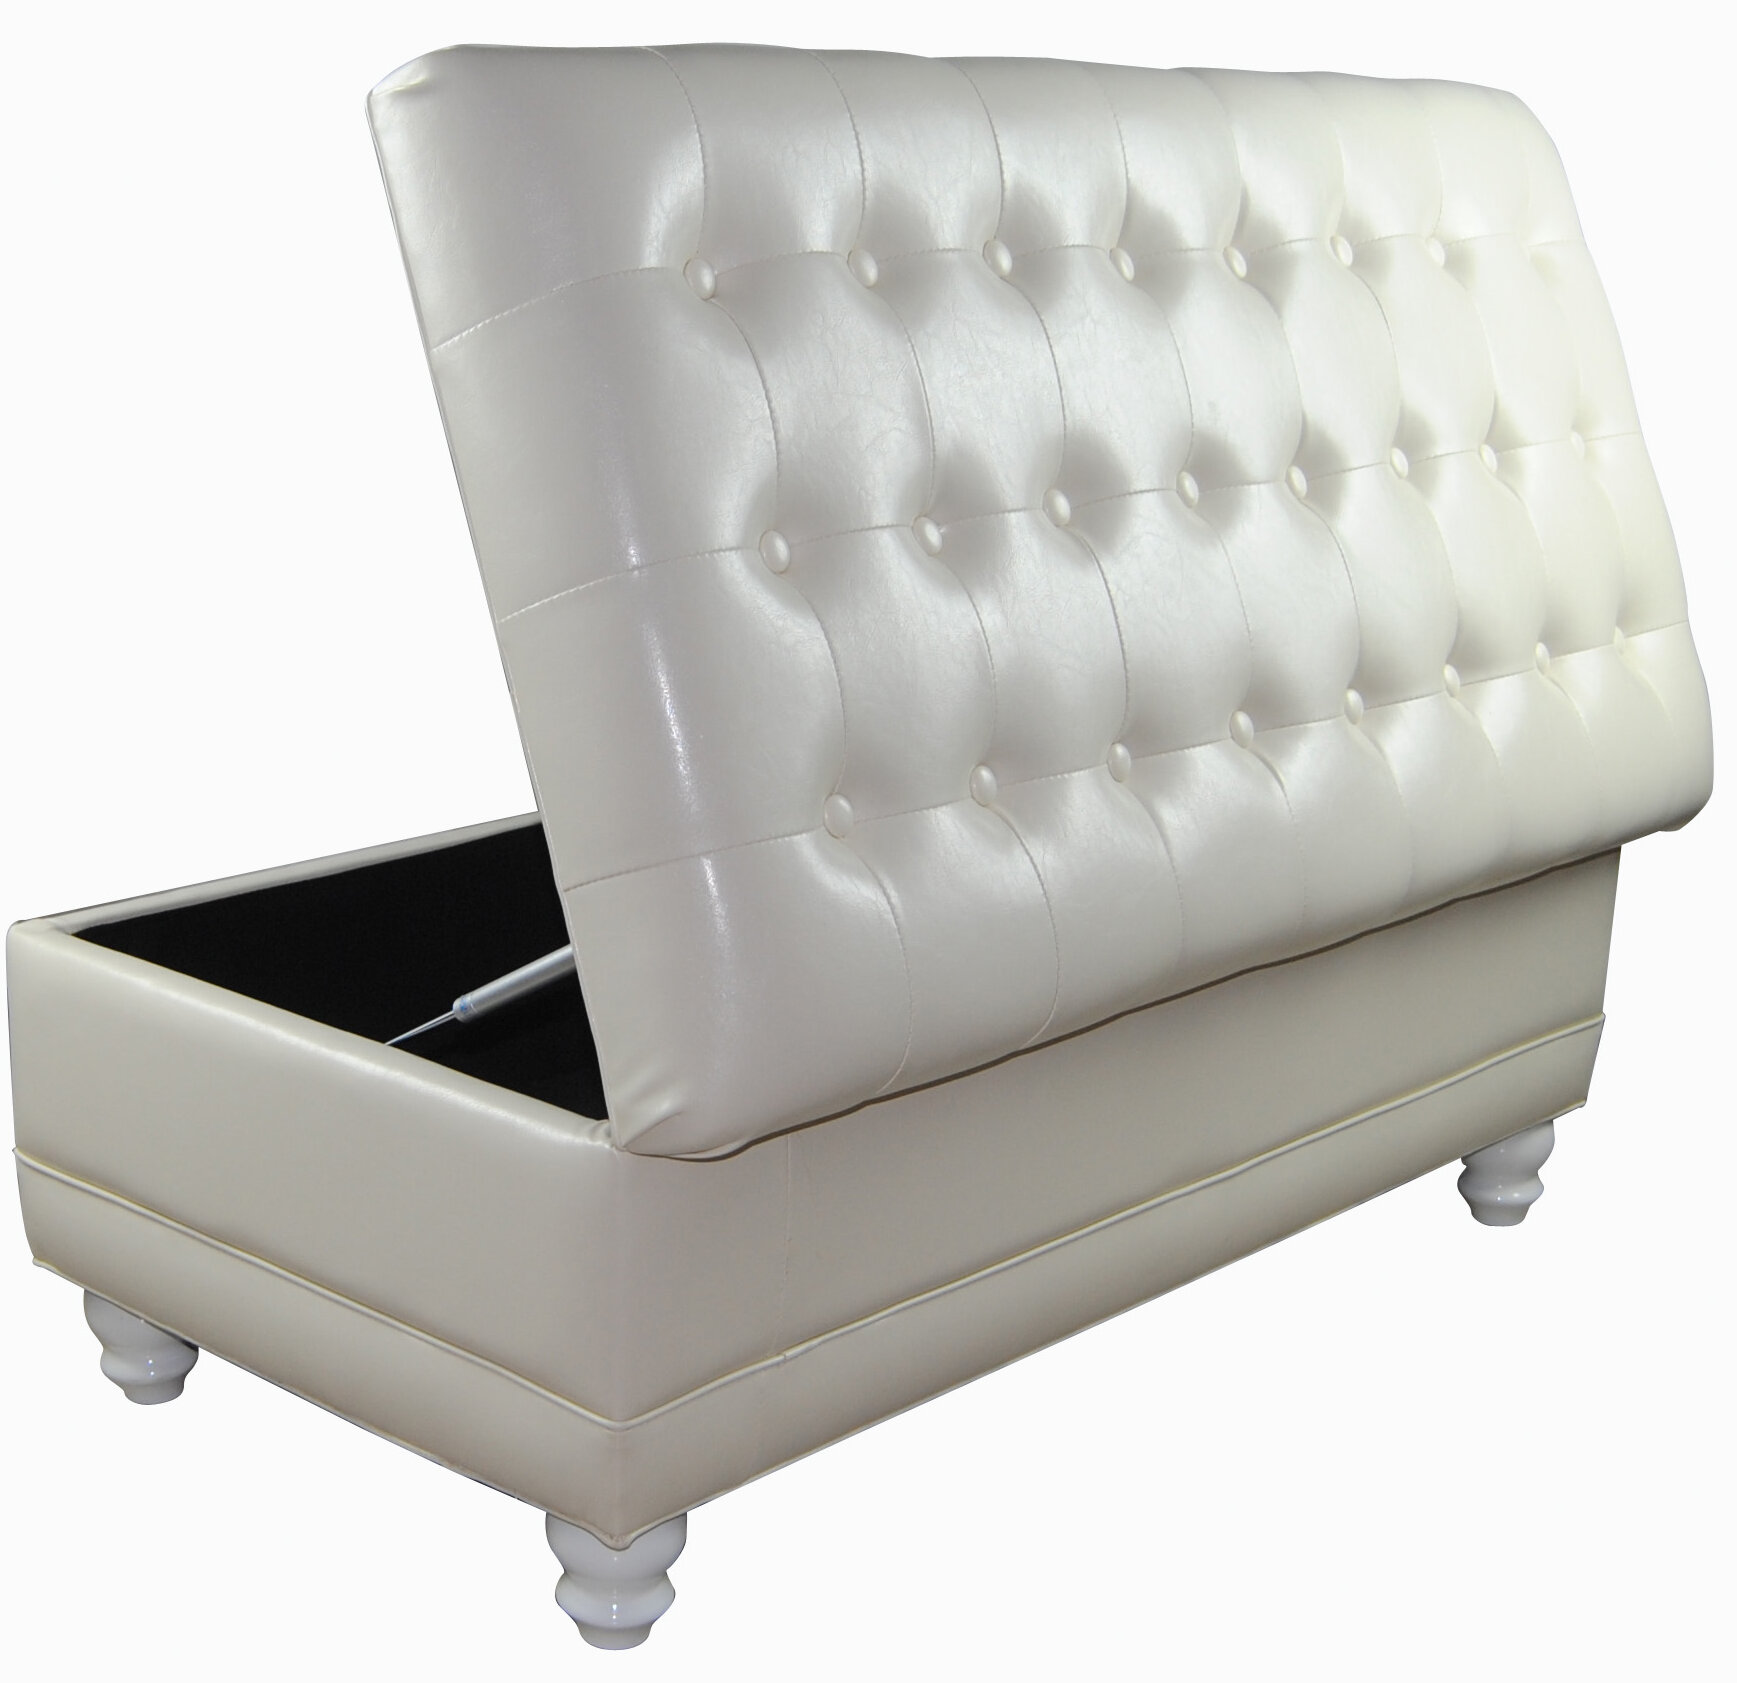 White Tufted Storage Bench Leatherette Ottoman Living Room Furniture Bedroom New Ebay